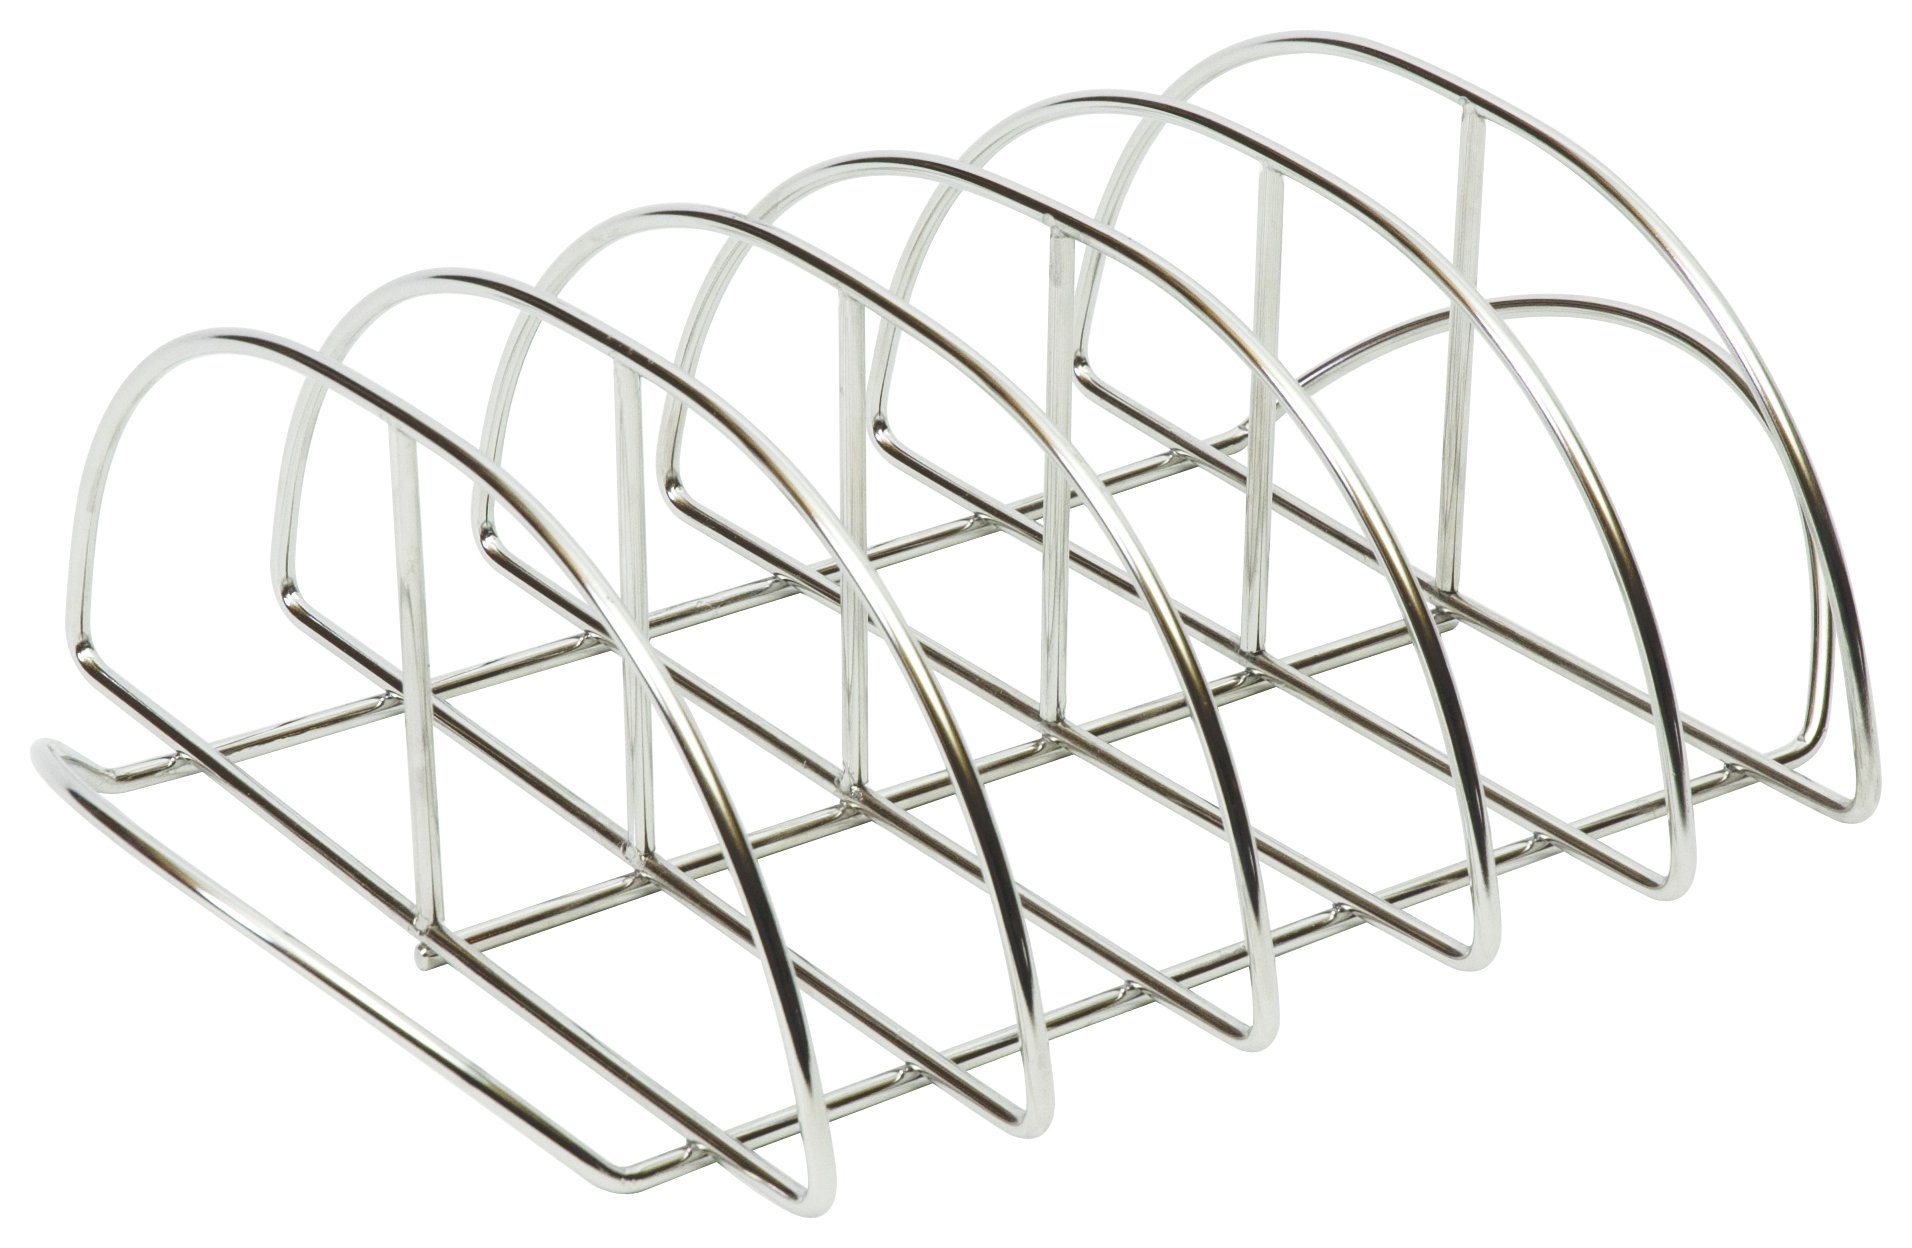 Image of Kamado Joe - Rib Rack for Classic and Big Joe BBQ